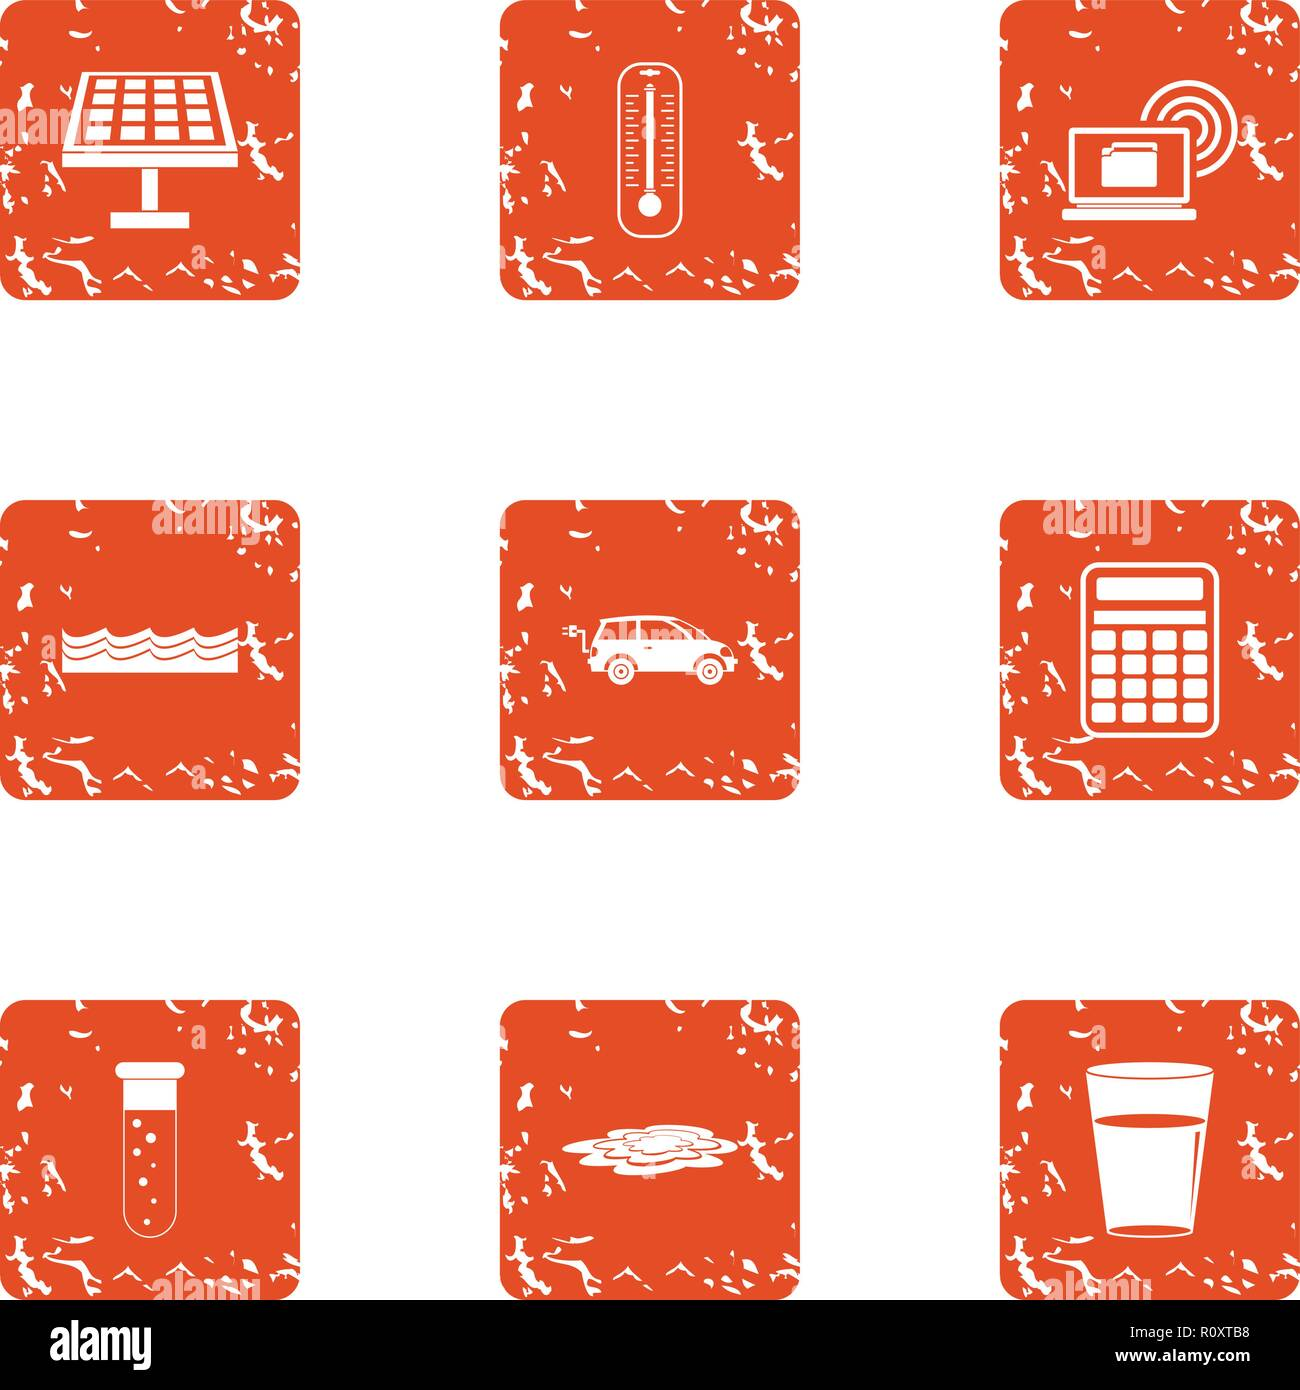 Survey of chemistry icons set, grunge style - Stock Vector